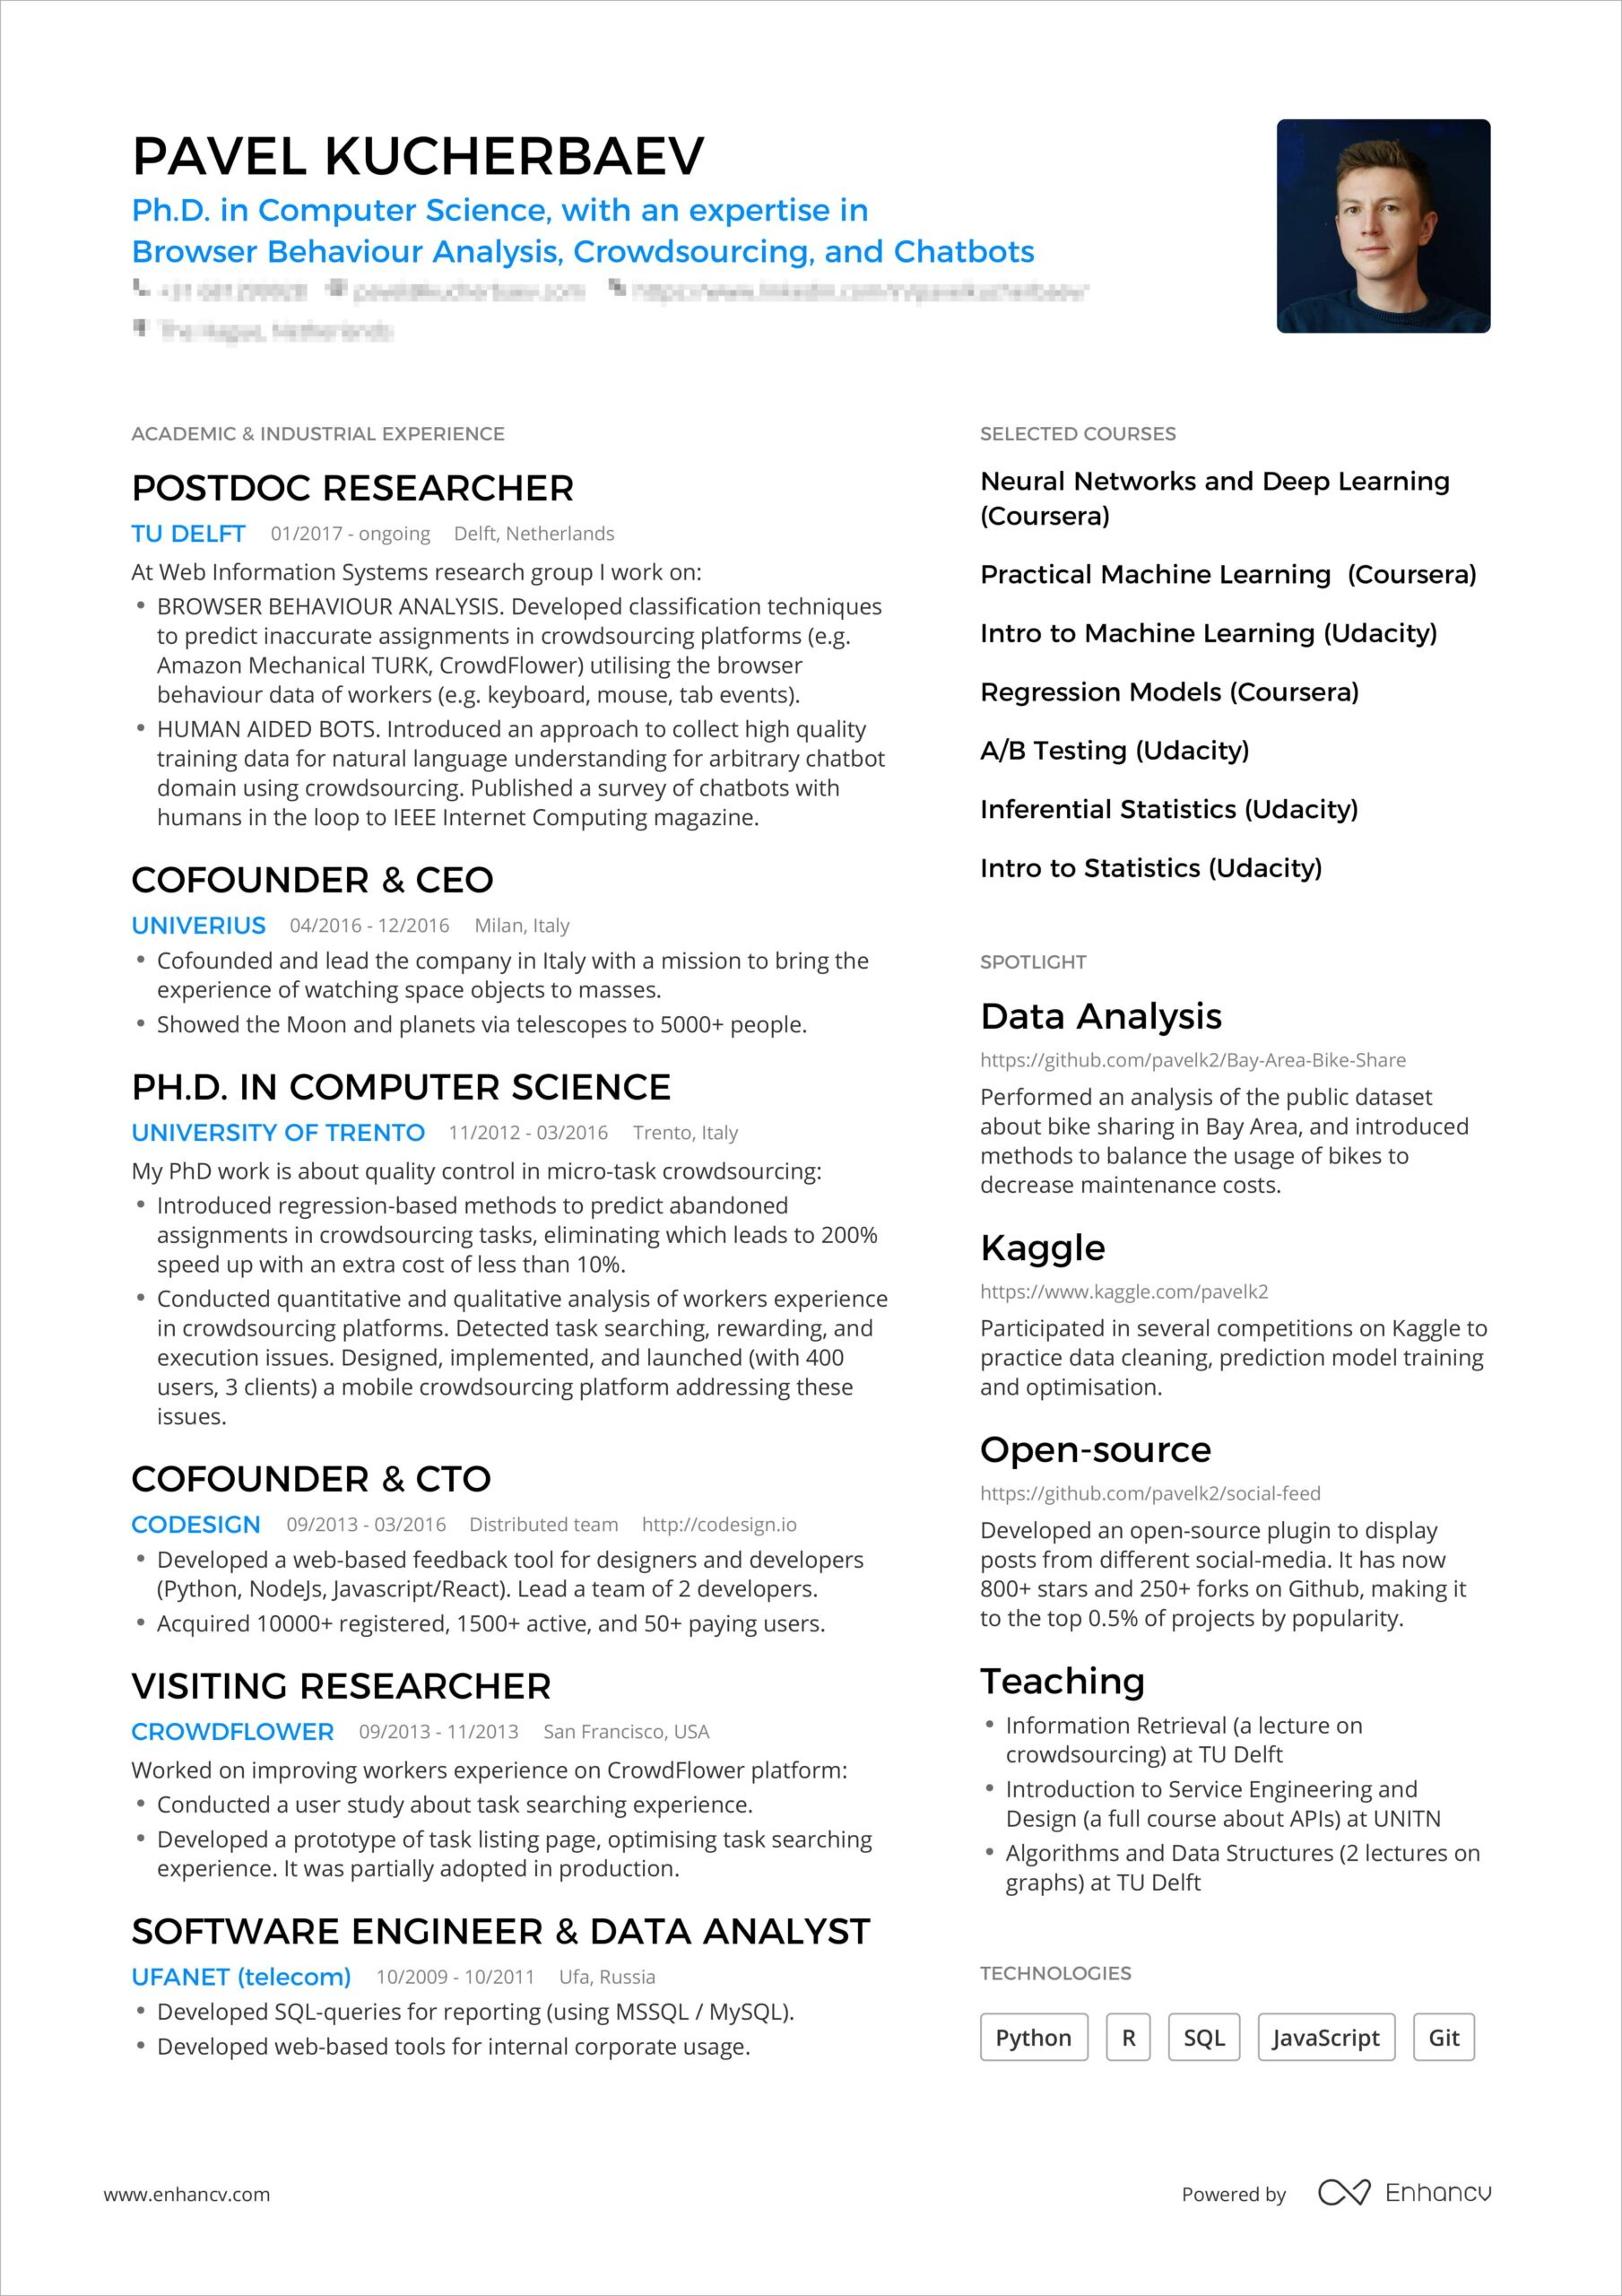 powerful one resume examples you can use now best template pavel booking bordered min Resume Best One Page Resume Template